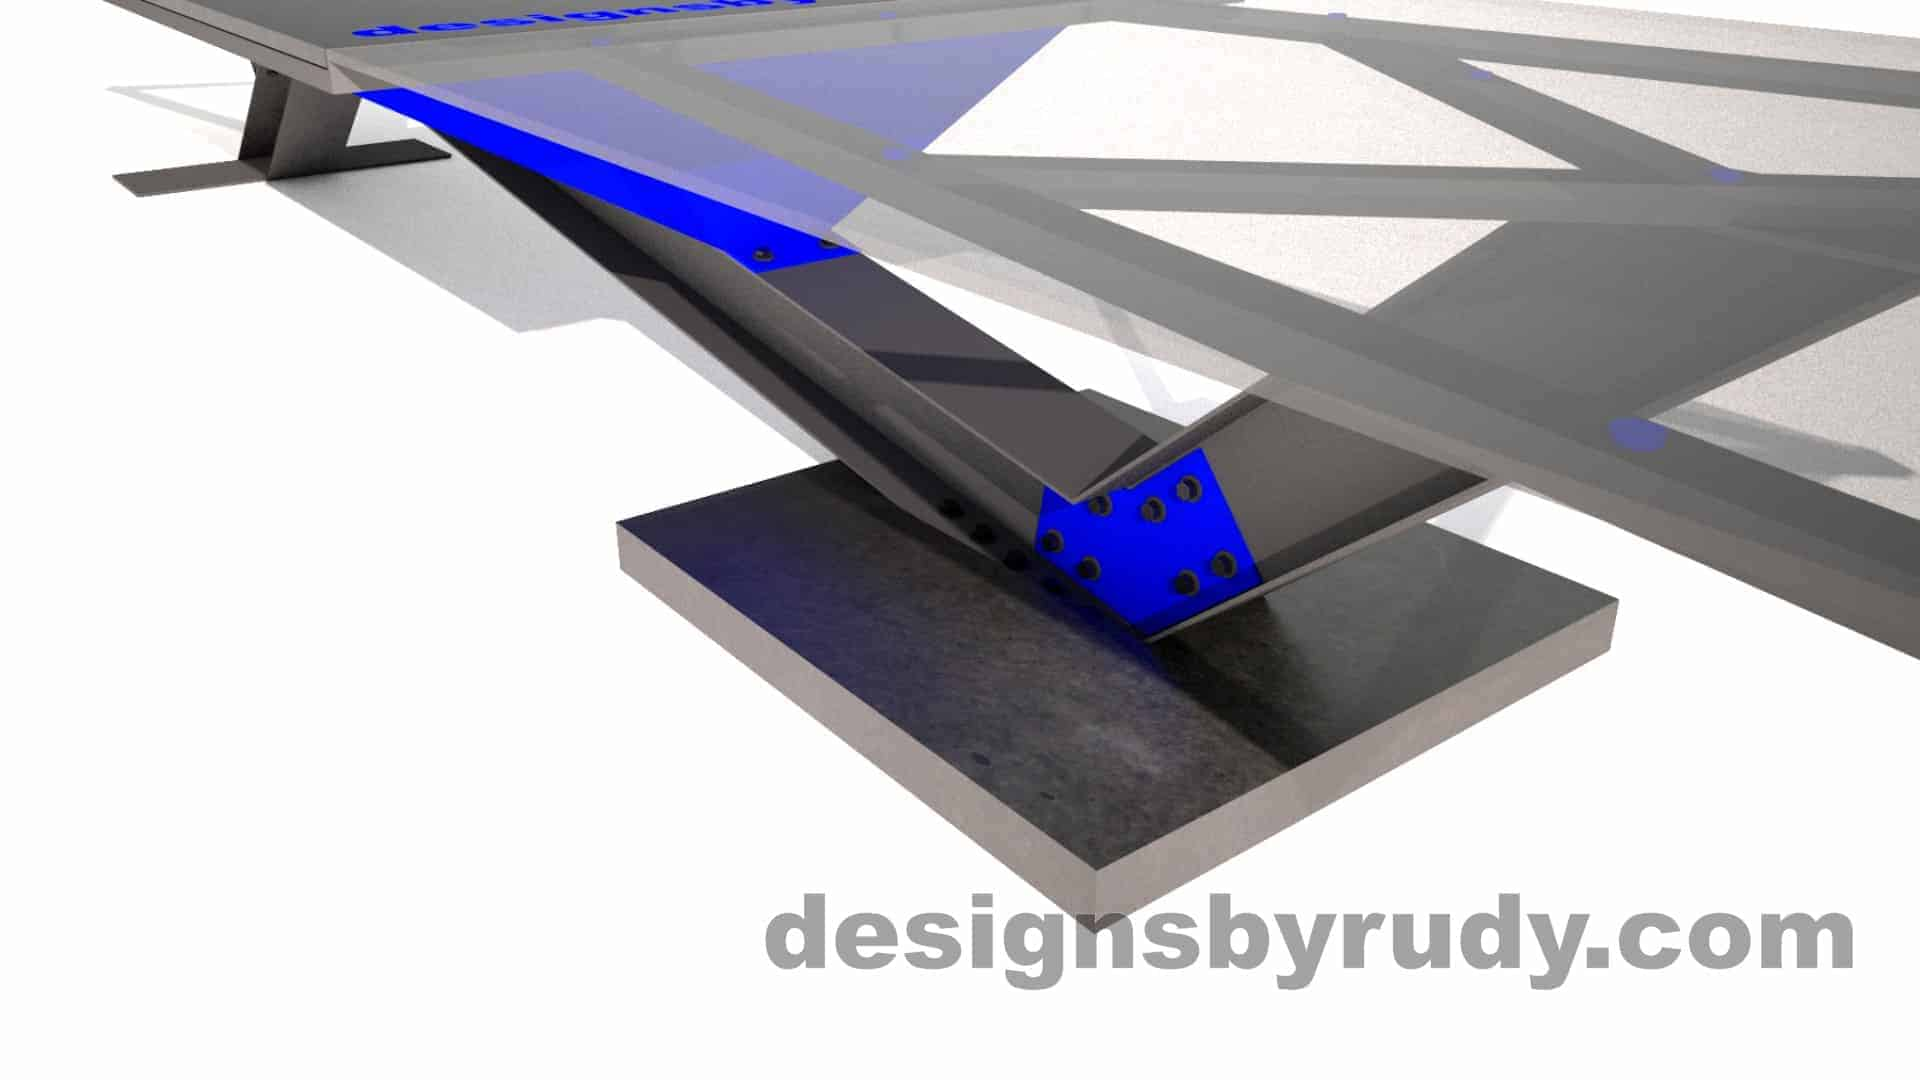 Concrete, steel, glass conference table modern design, concrete support slab closeup